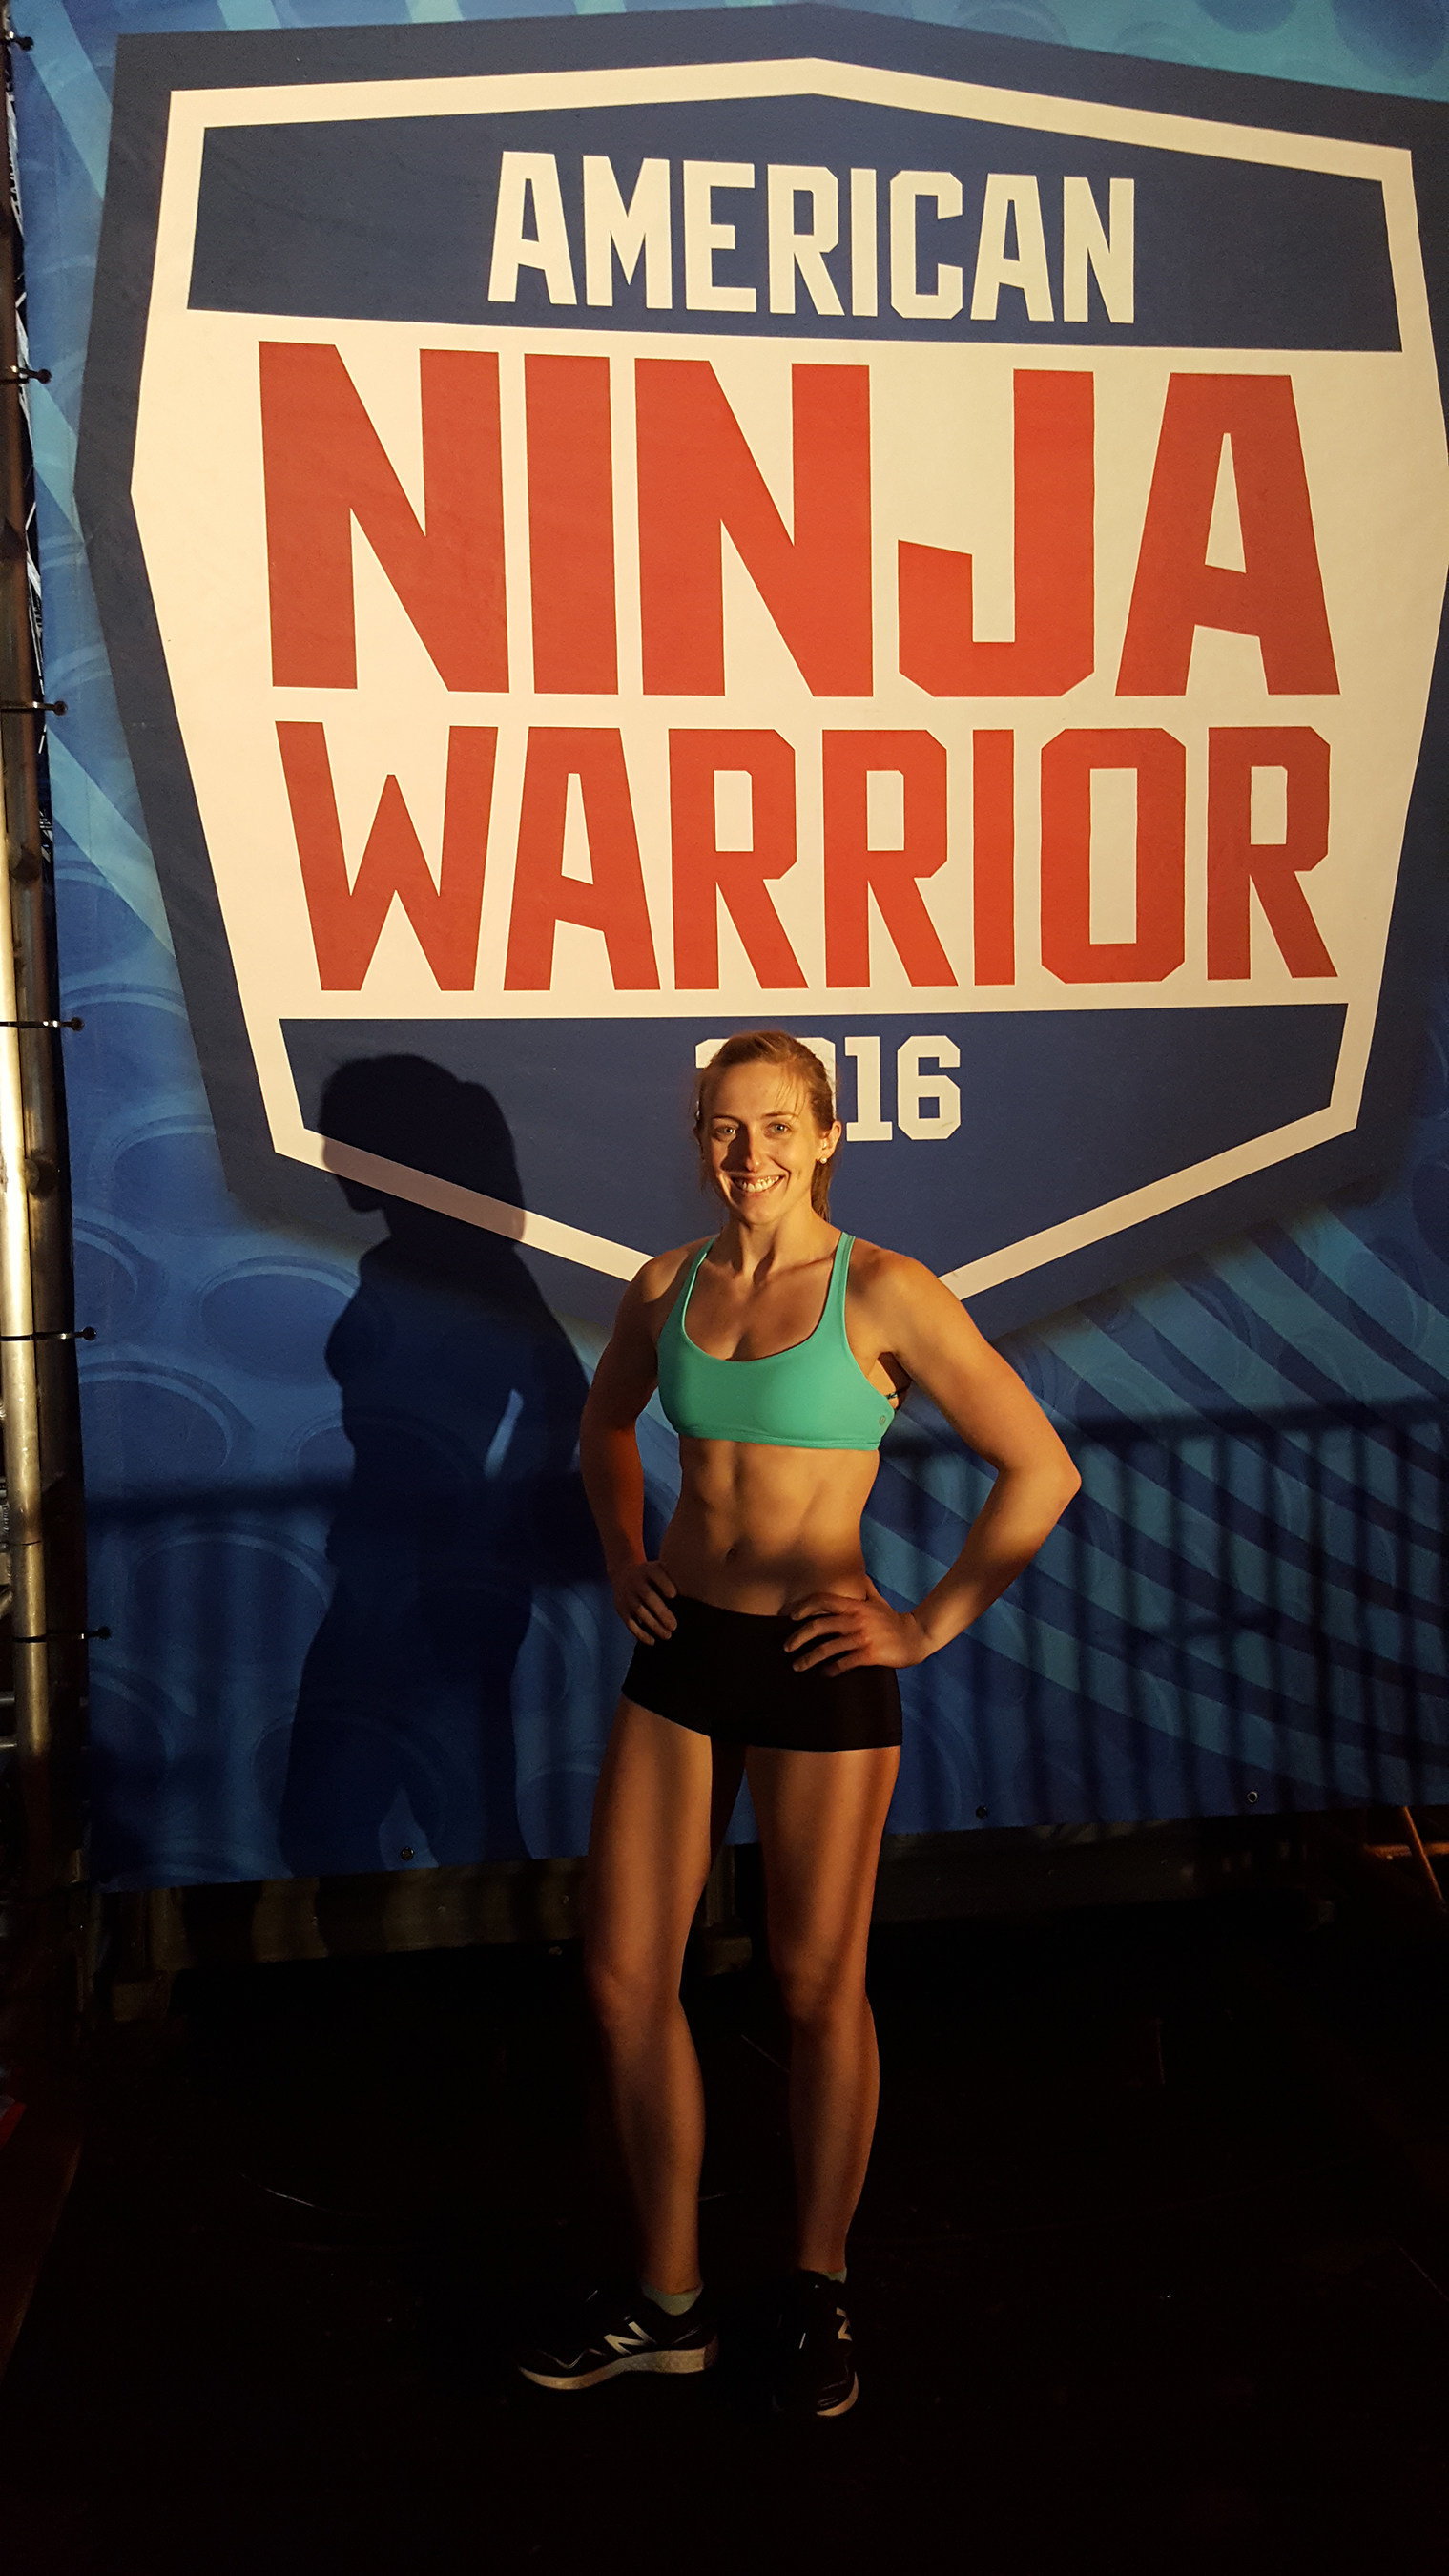 Allyssa Beird, Web Manager for BankersHub Online Financial Services Training, in 2016 season of NBC's American Ninja Warrior. Competing in Philadelphia, Allyssa and 3 other women set the record for the first time four women advanced to city finals.